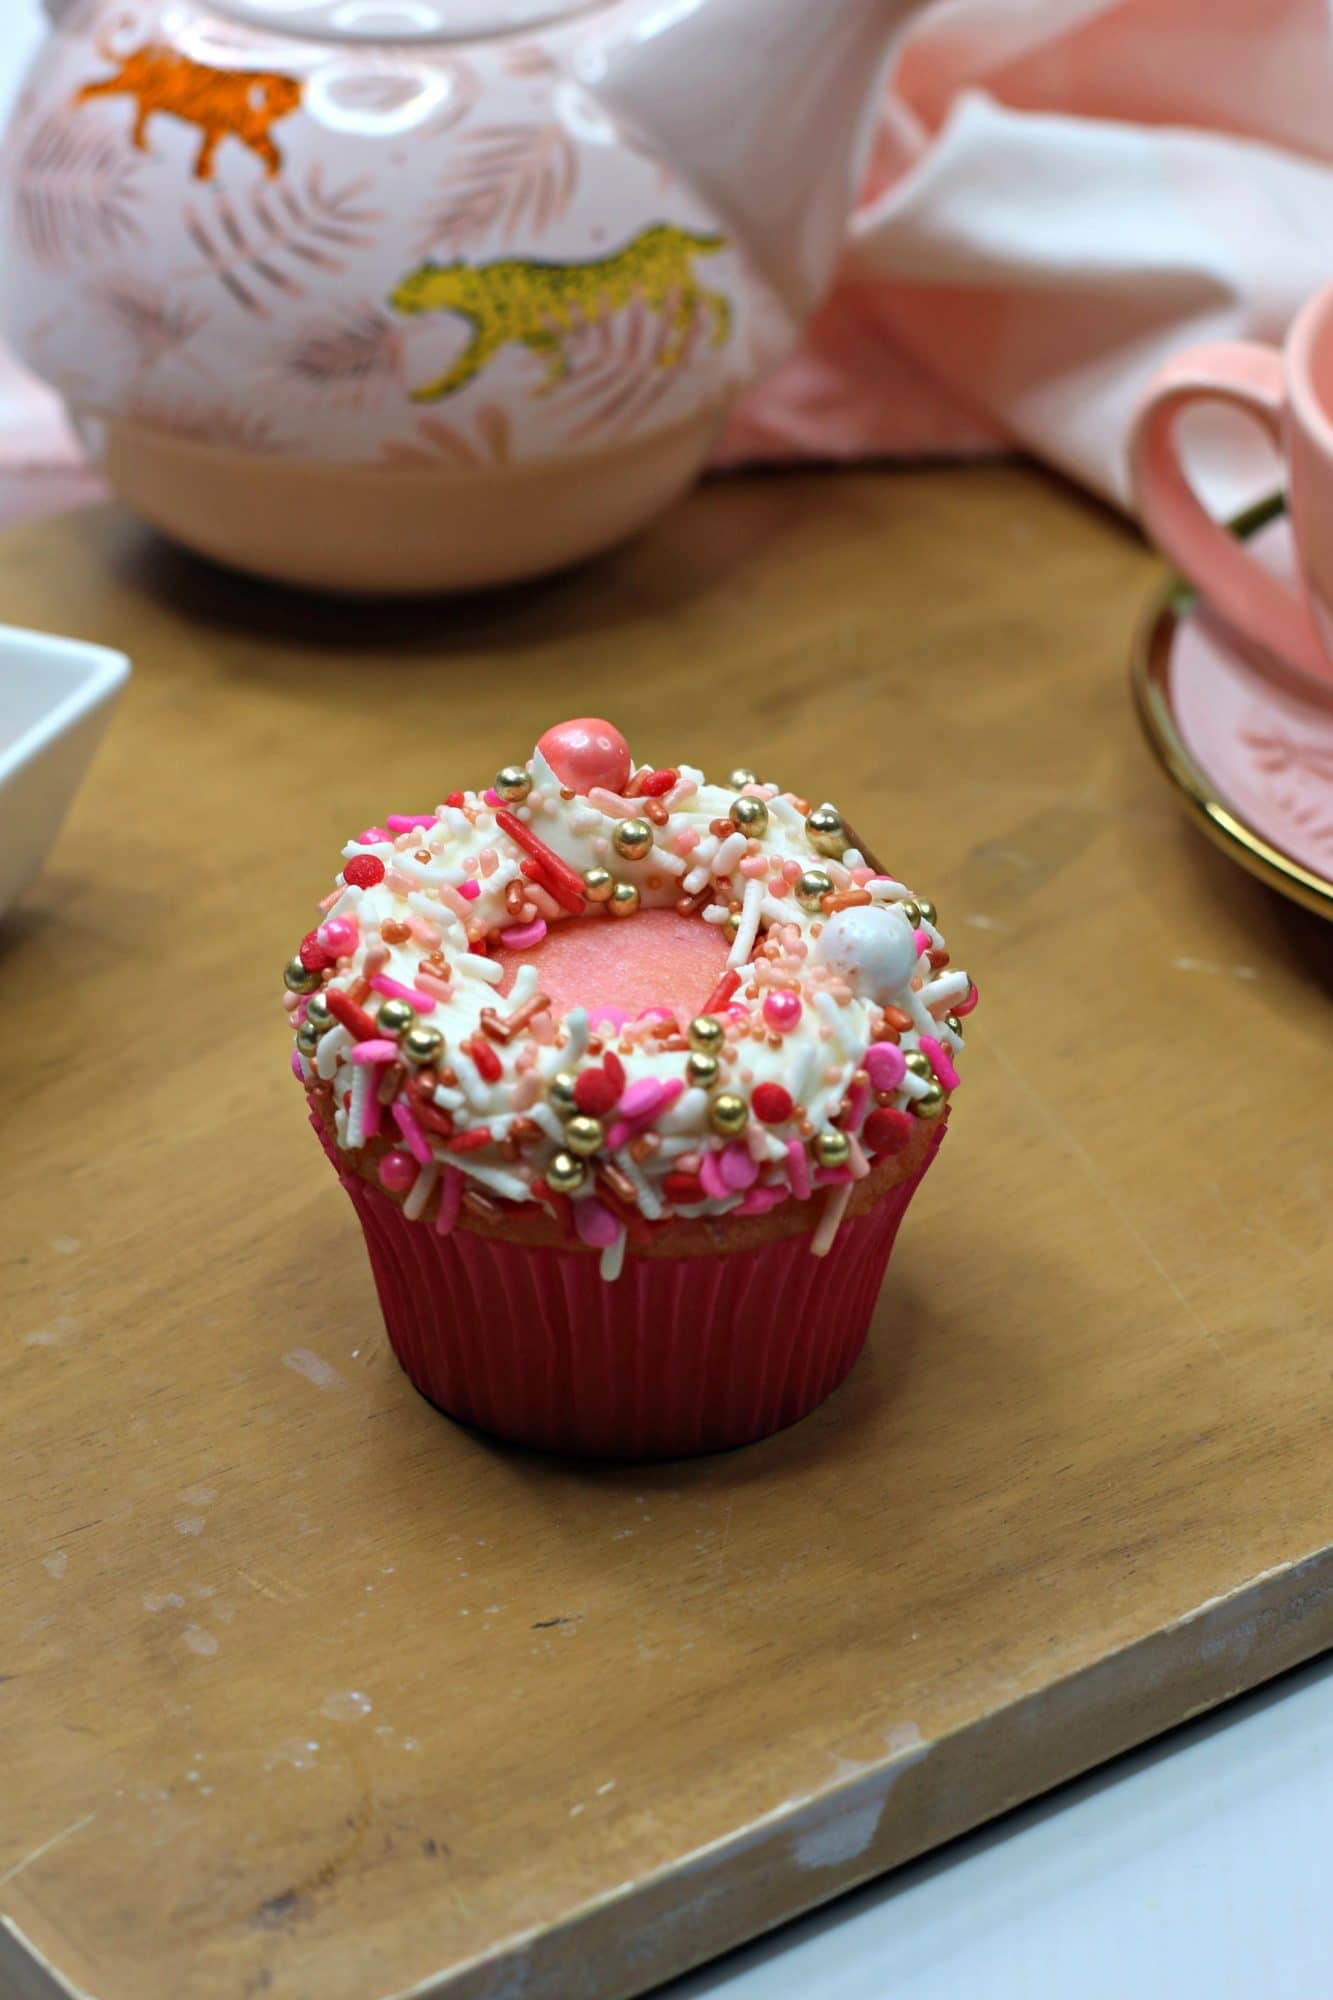 pink cupcake with white frosting and sprinkles